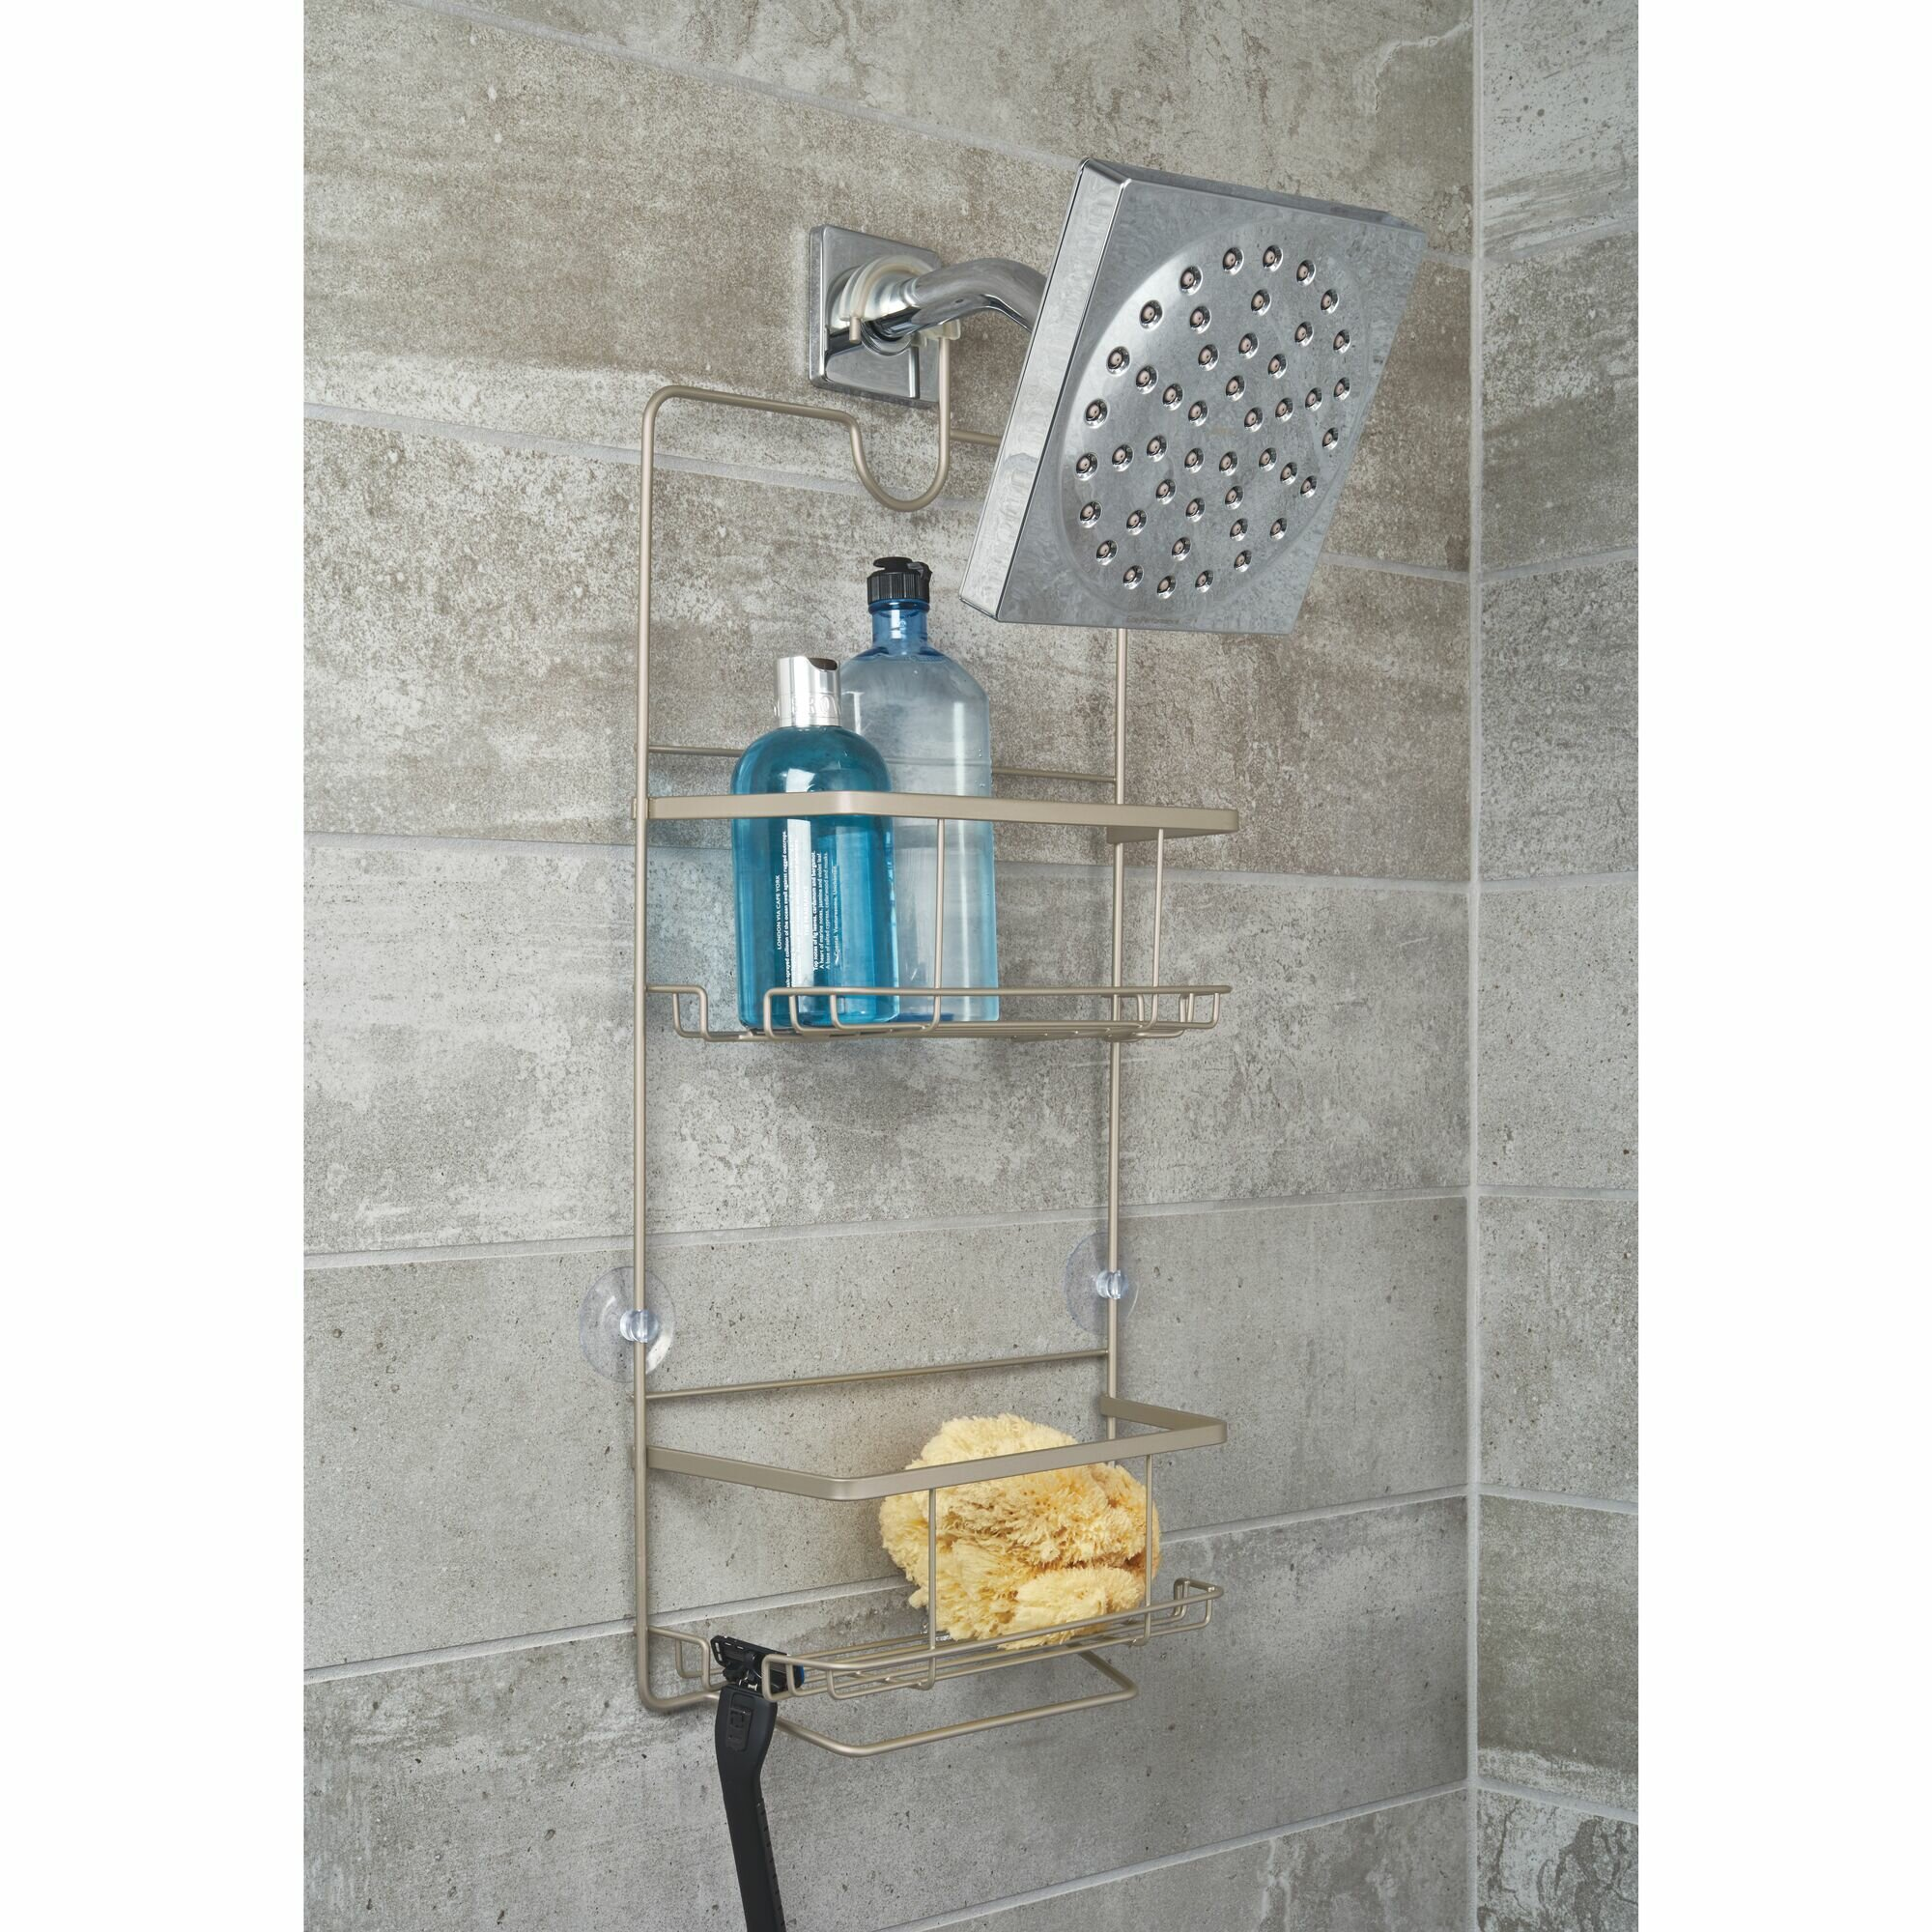 W//O the soap dish Back Plate Shower Caddy Soap Dish for the Ulti-Mate Dispenser